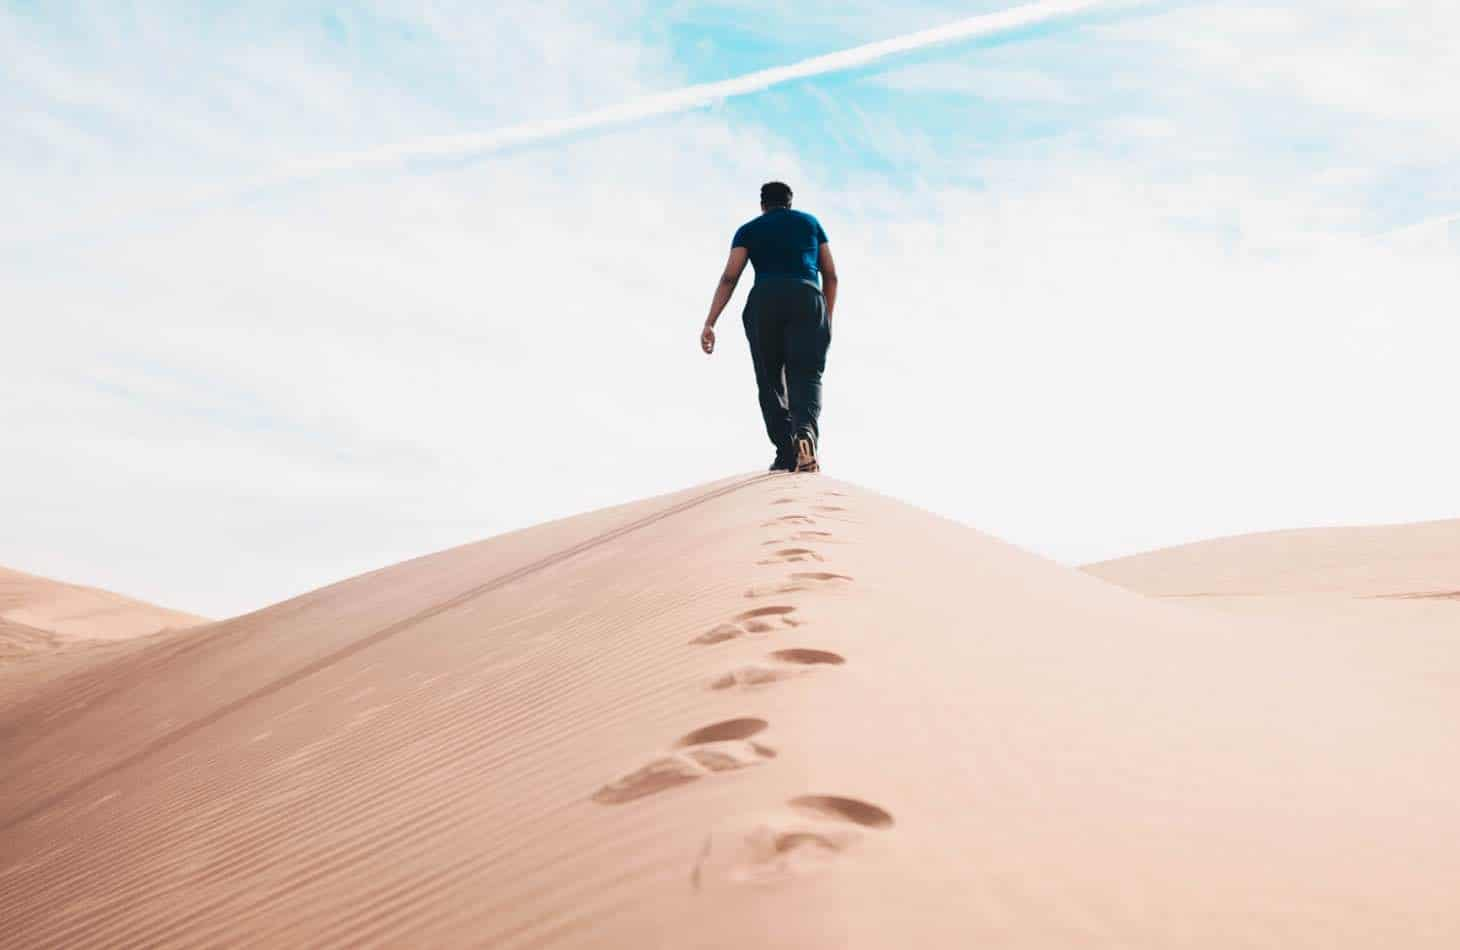 A Man Walking In A Desert Representing The Journey Of Sobriety And Medication Assisted Treatment